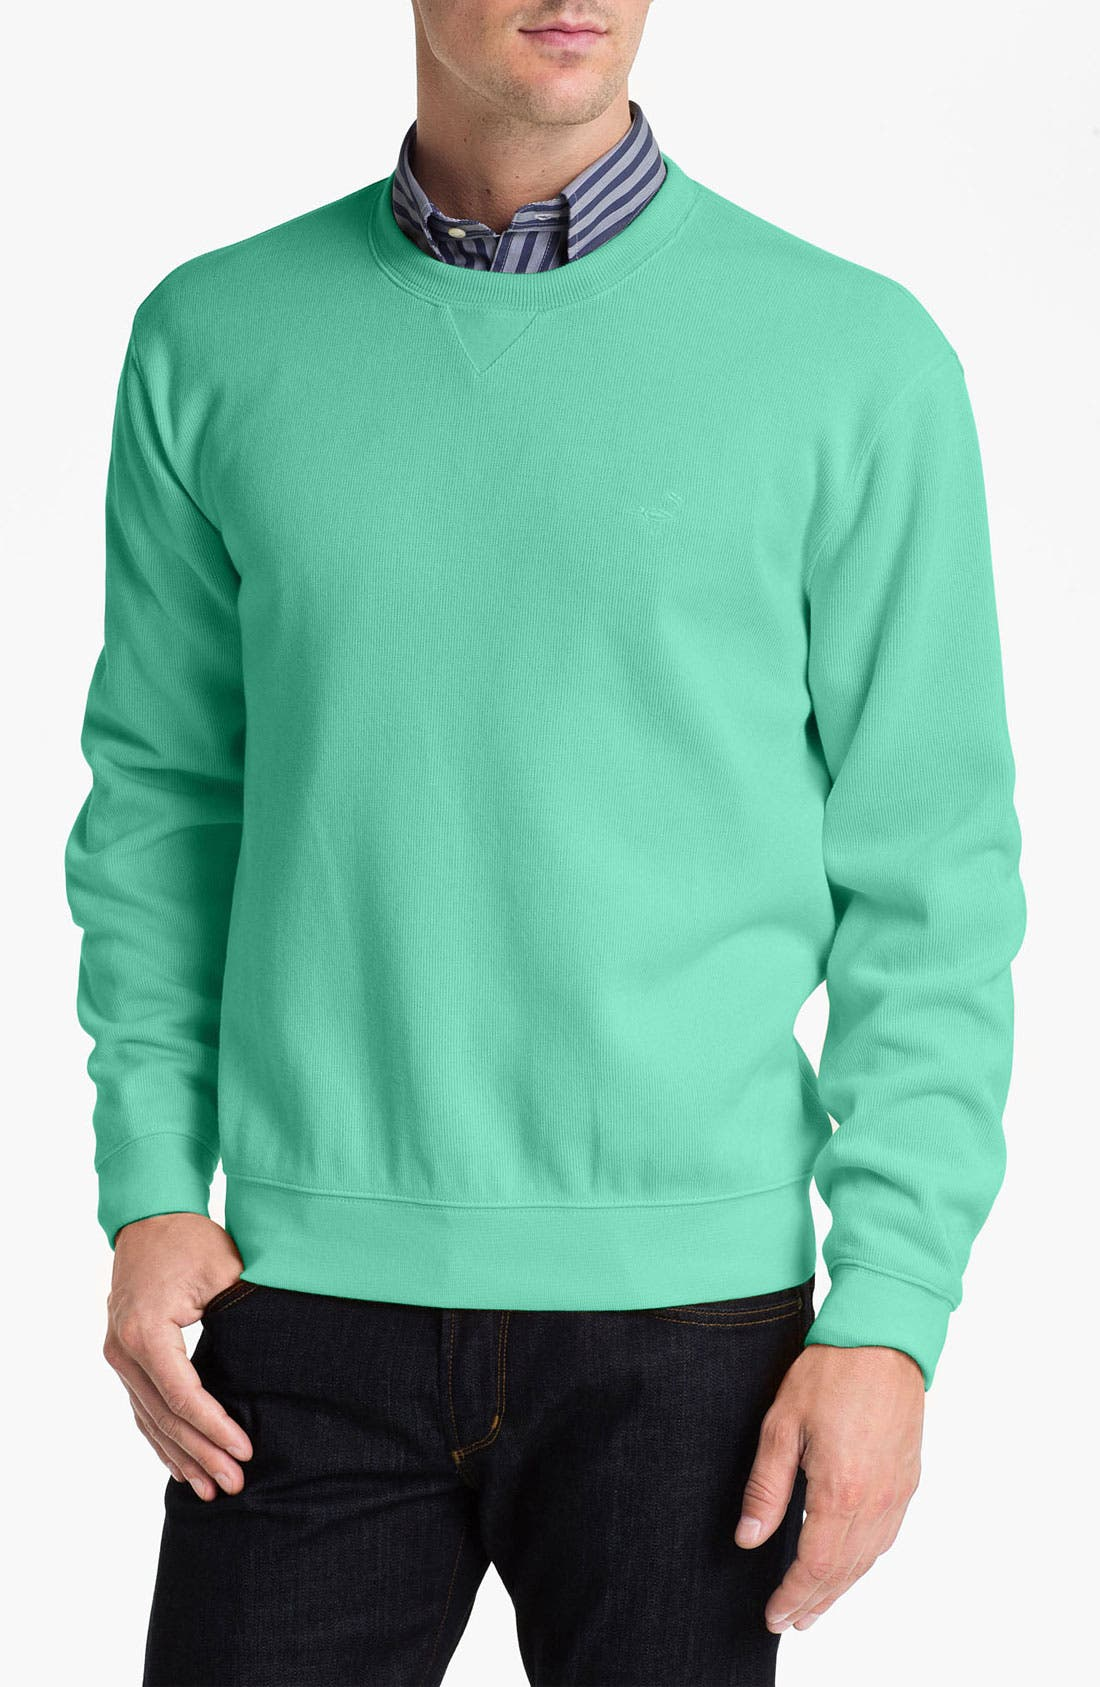 Main Image - Façonnable Crewneck Regular Fit Sweatshirt